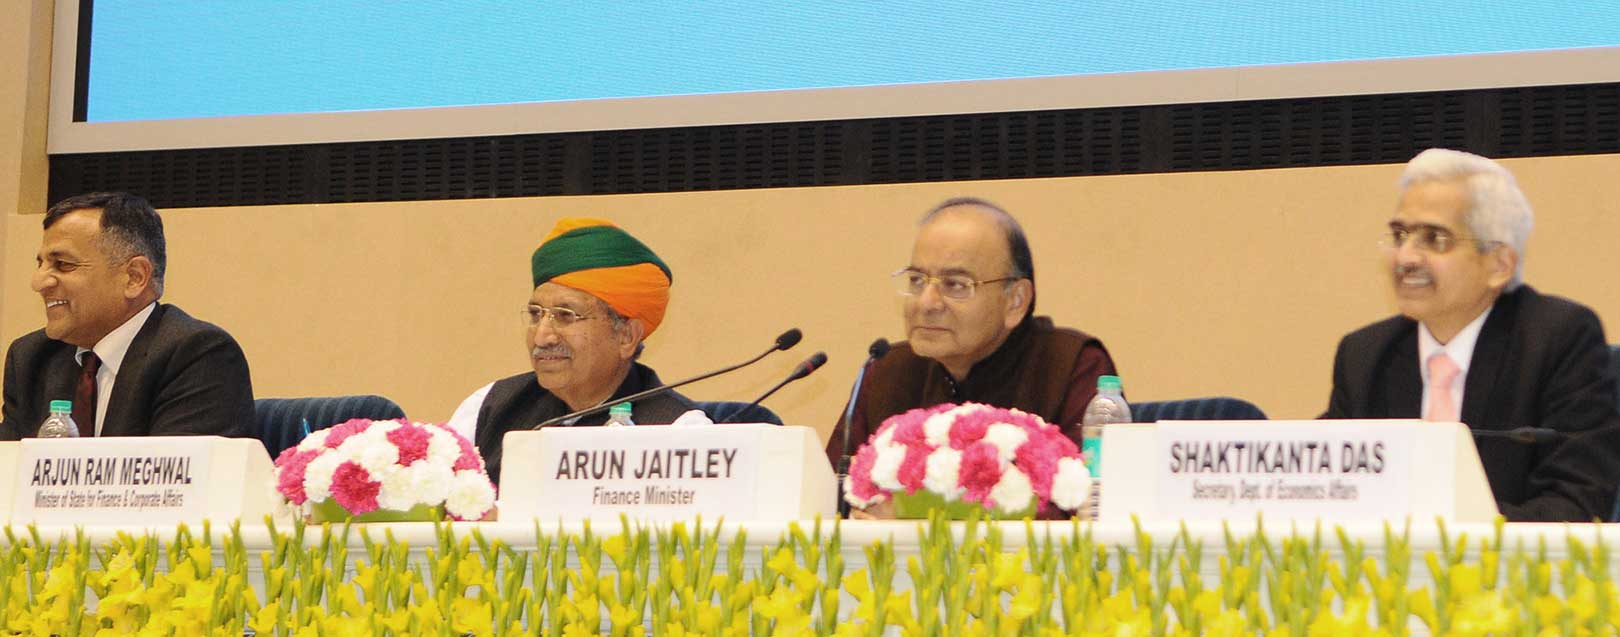 Protectionist stance will shrink global growth, warns Jaitley